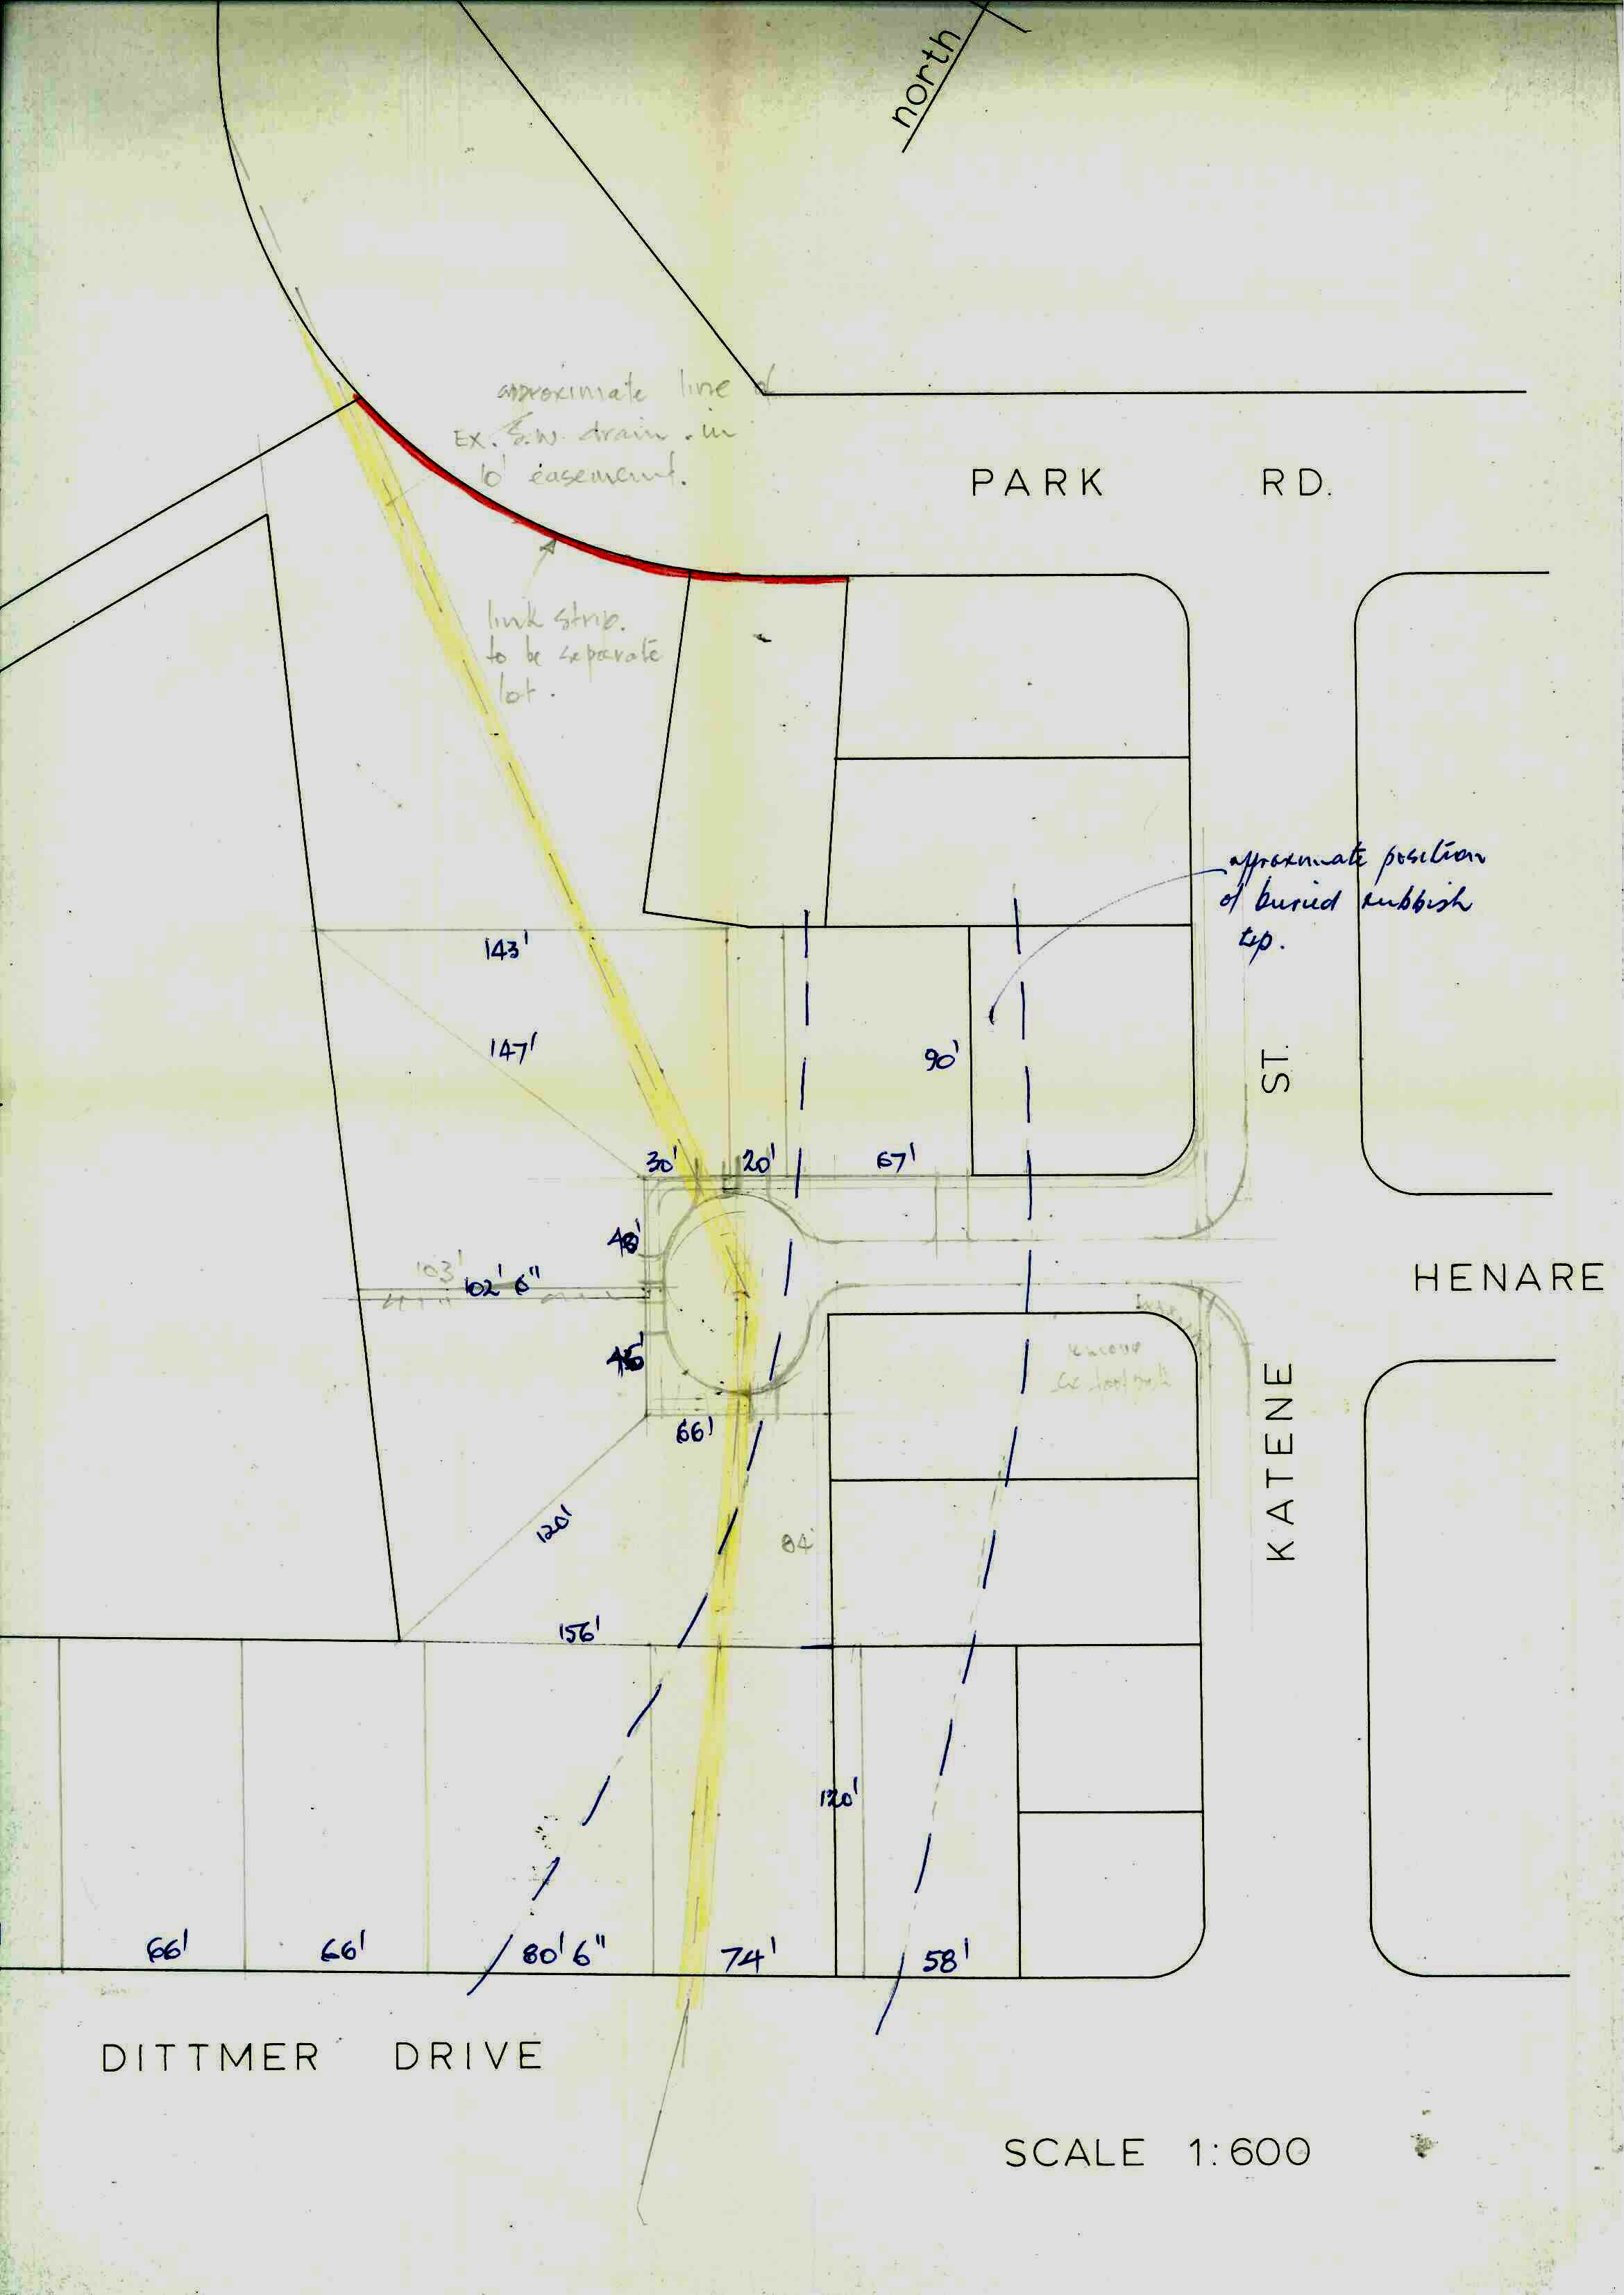 Figure 2: Plan showing the original subdivision proposal for Huata Place. Source: Ian Matheson City Archives, Series 7/1/2, Box 27, Folder 2.